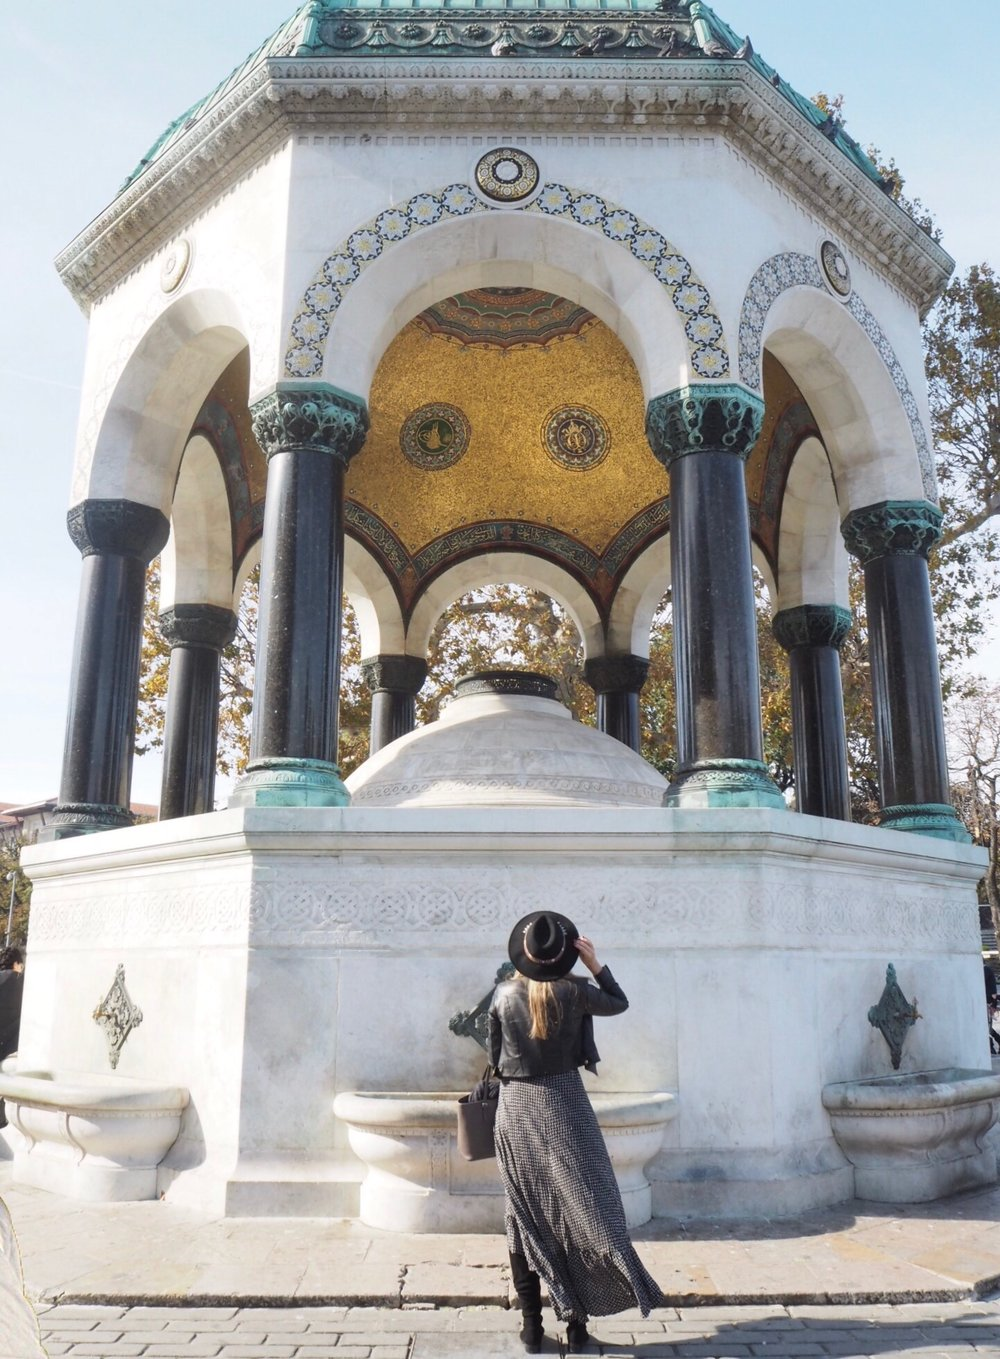 The German Fountain, Sultanamet